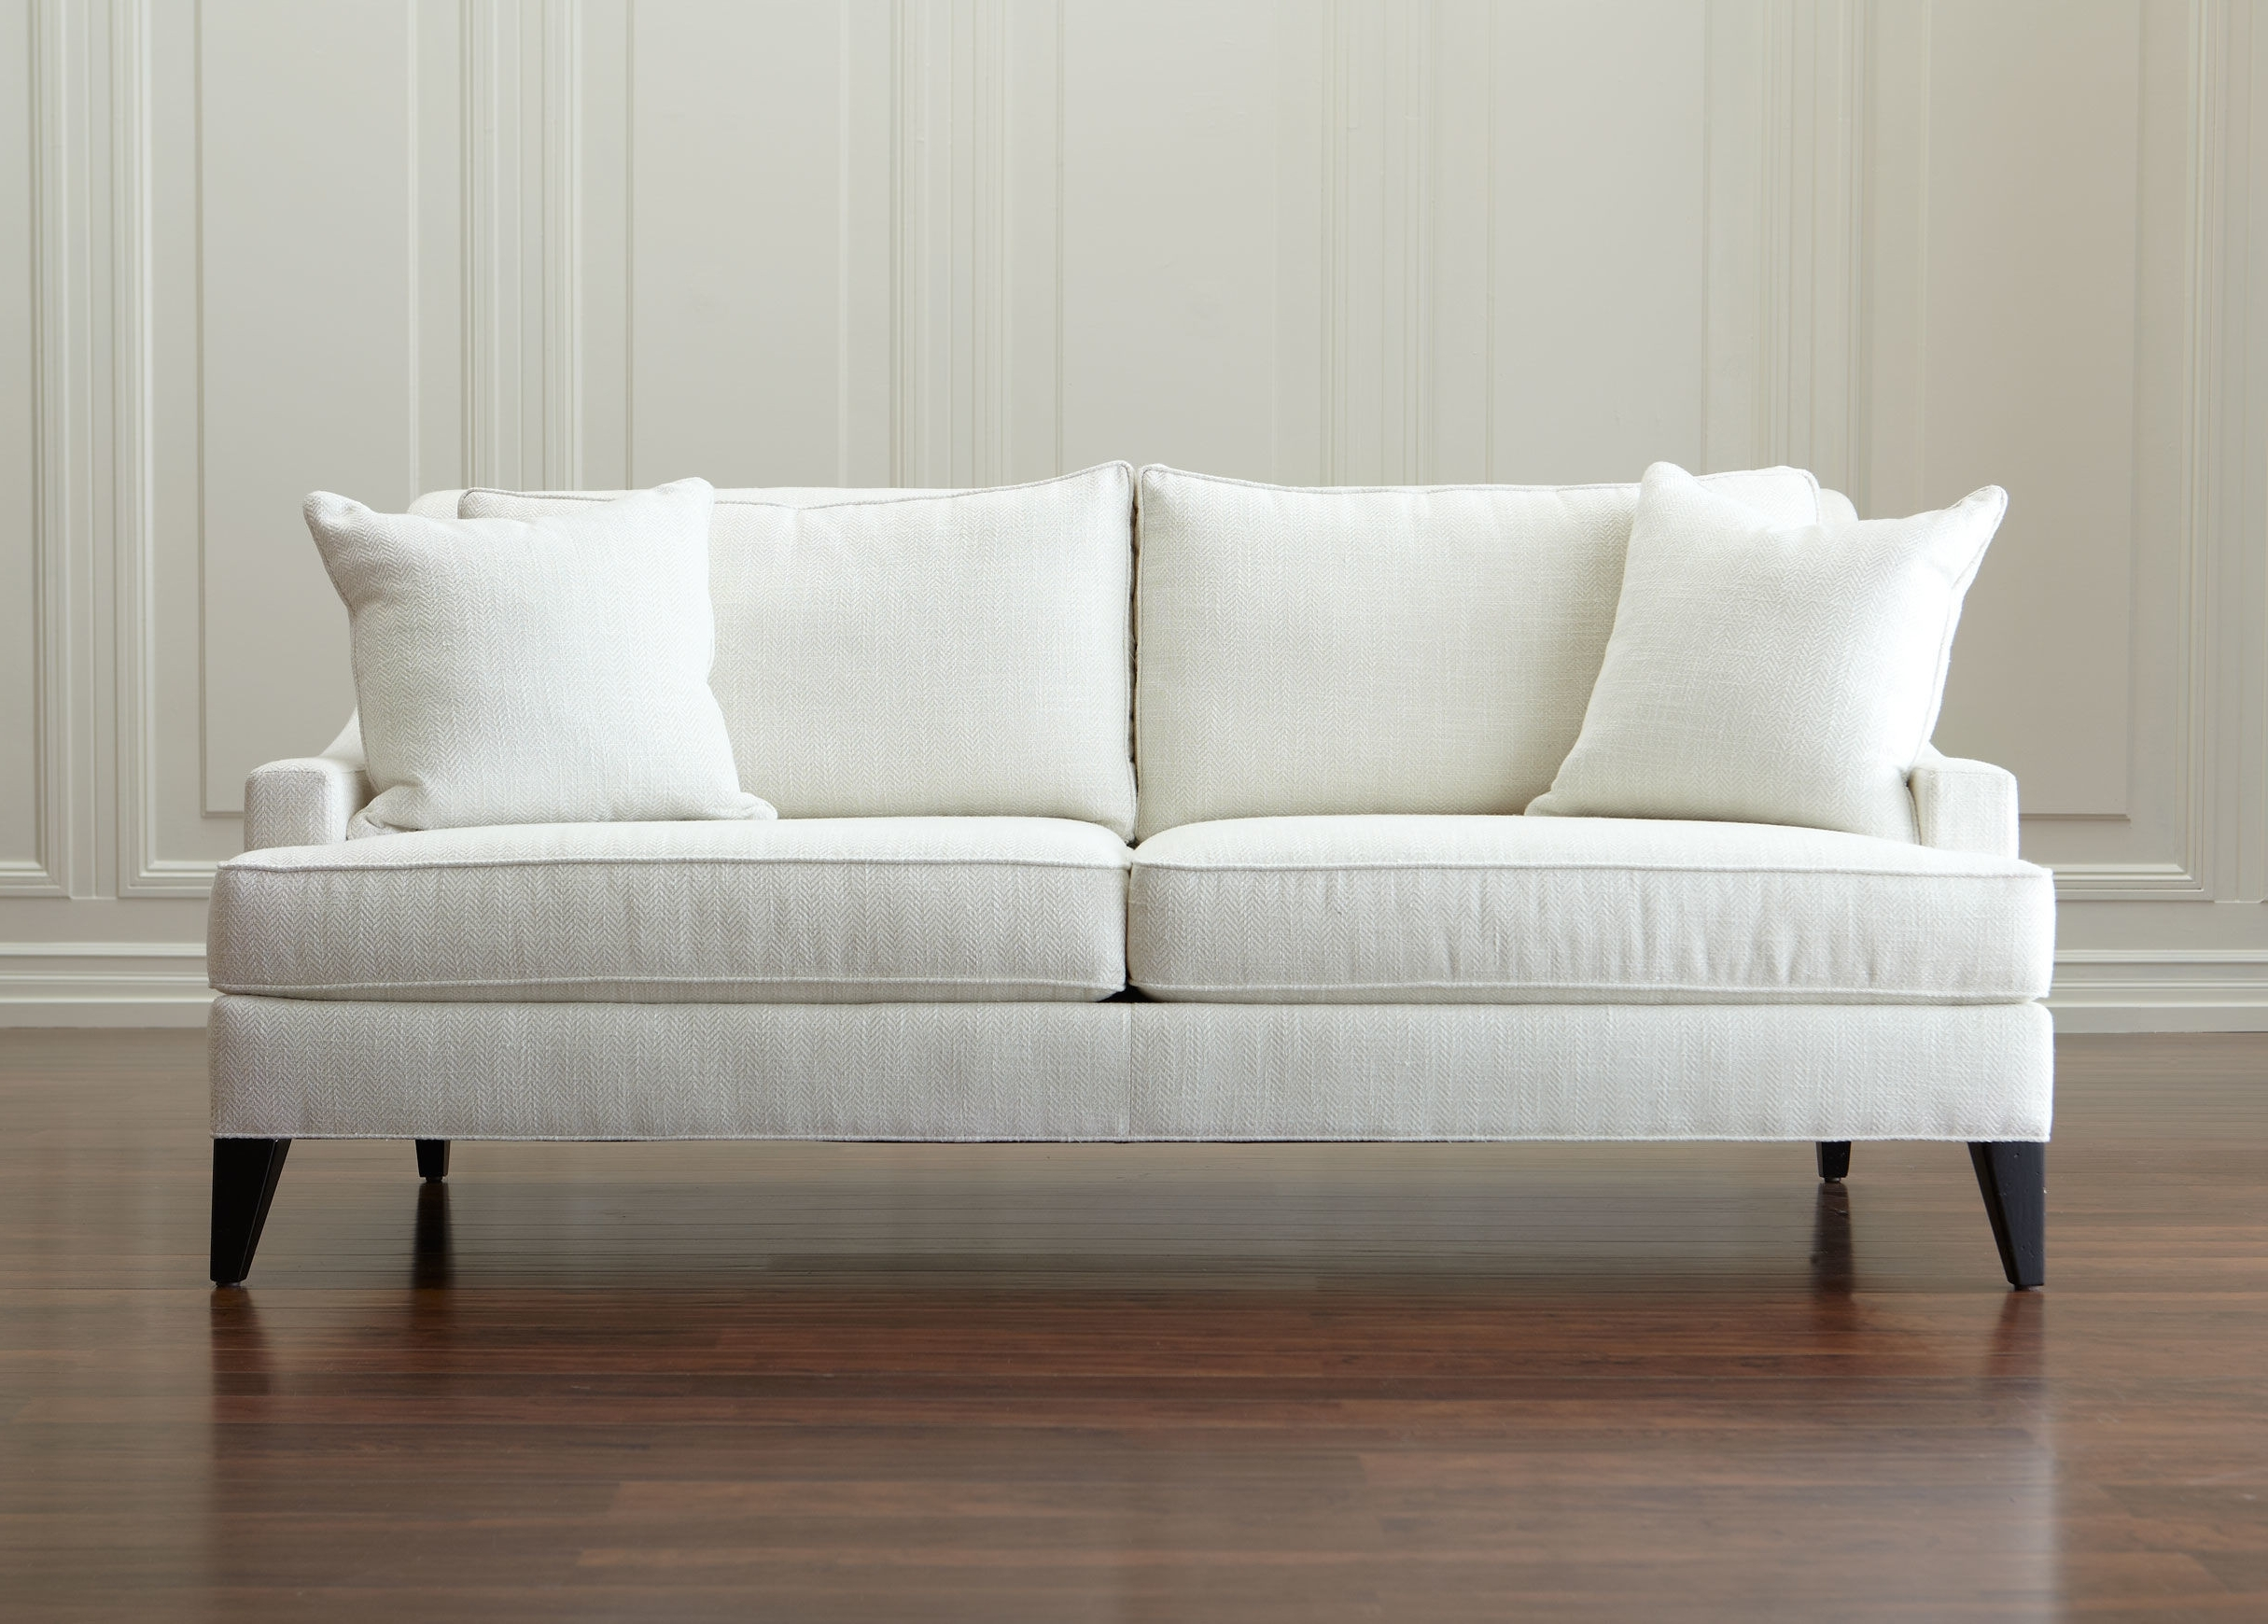 Favorite Furniture : Ethan Allen Down Filled Sofa Luxury Best Ethan Allen Intended For Down Filled Sofas (View 14 of 15)